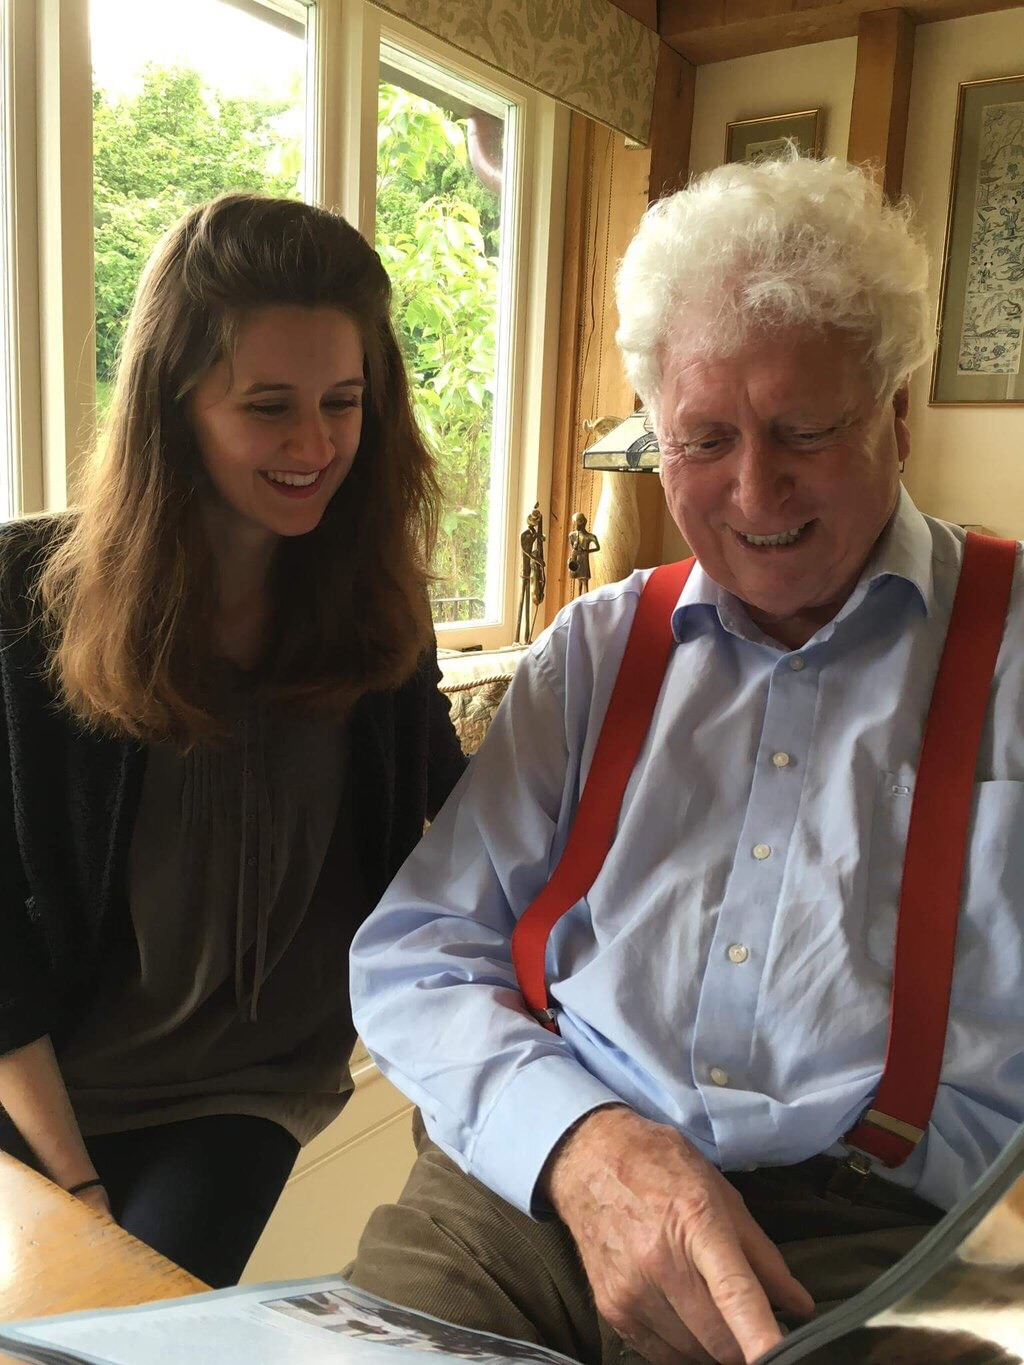 Doctor Who Magazine - Emily Cook and Tom Baker - Photo Credit Tom Spilsbury